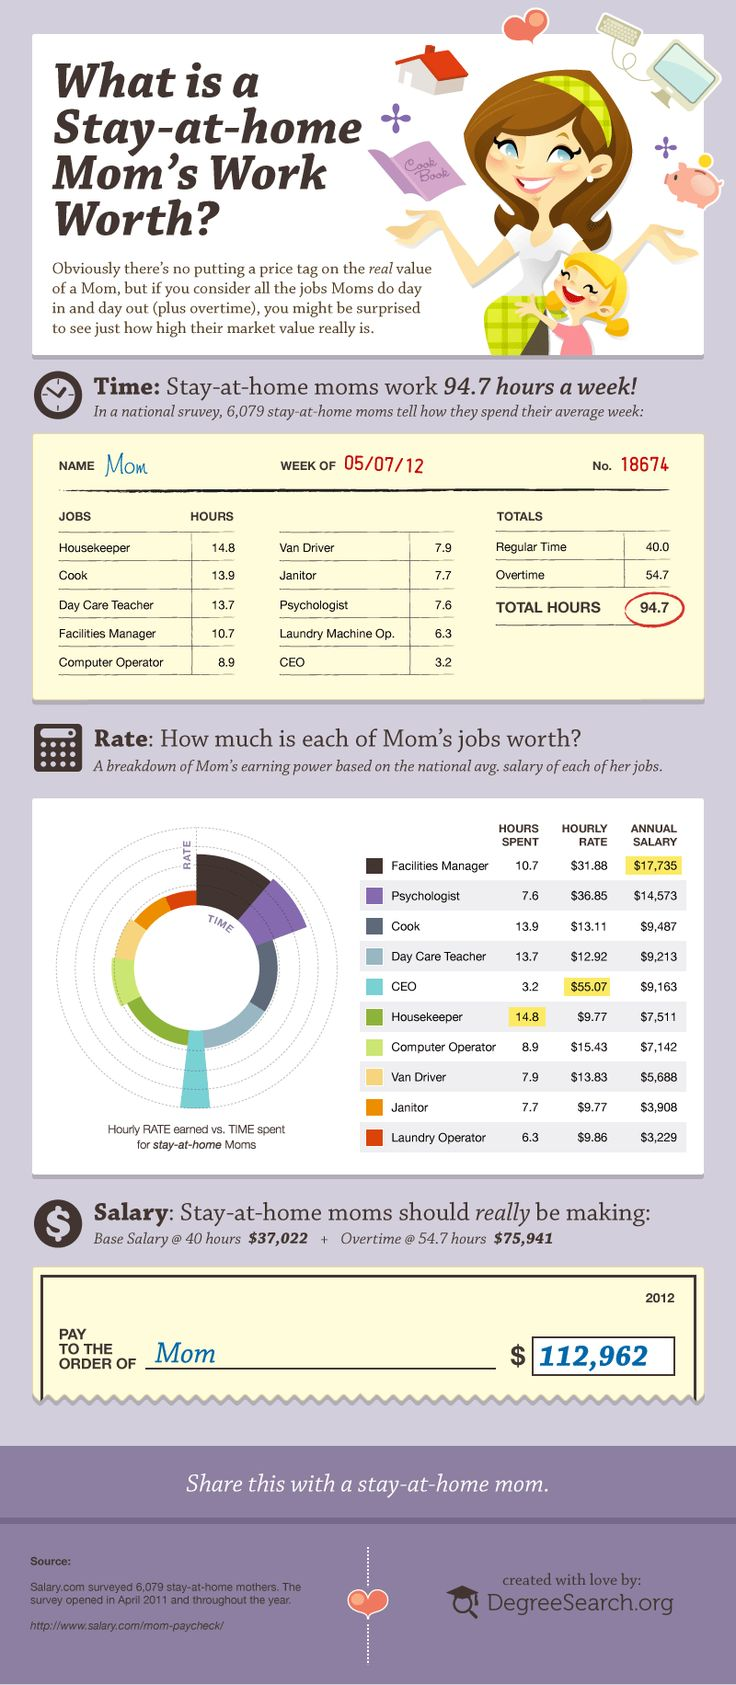 What Is A Stay-At-Home Mom's Work Worth? [INFOGRAPHIC] #stayathome #mom